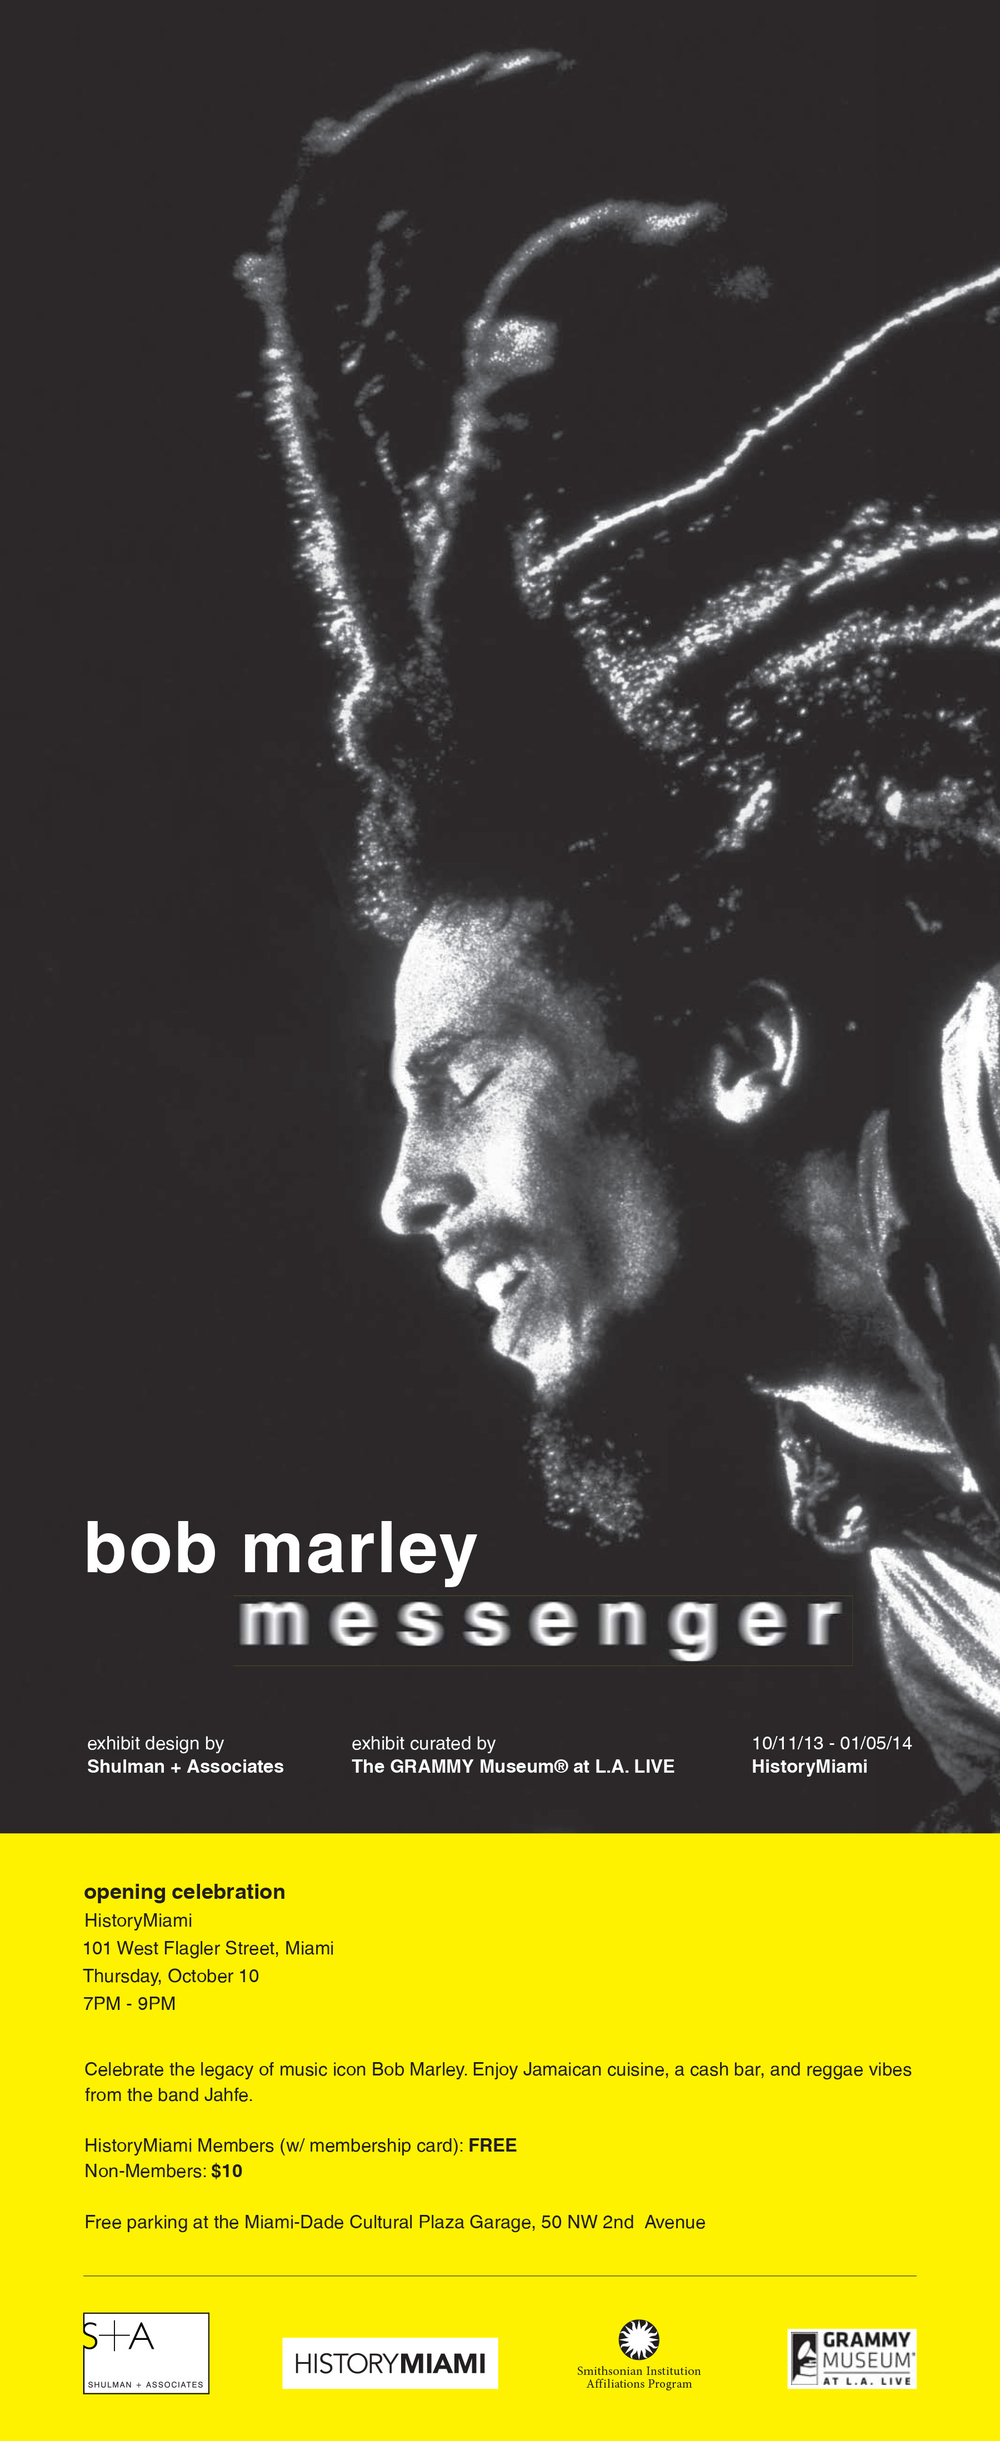 Bob Marley Messenger, on display from October 11, 2013 - January 5, 2014 at HistoryMiami. Exhibit design by Shulman + Associates; exhibit curated by The GRAMMY Museum® at L.A. Live.